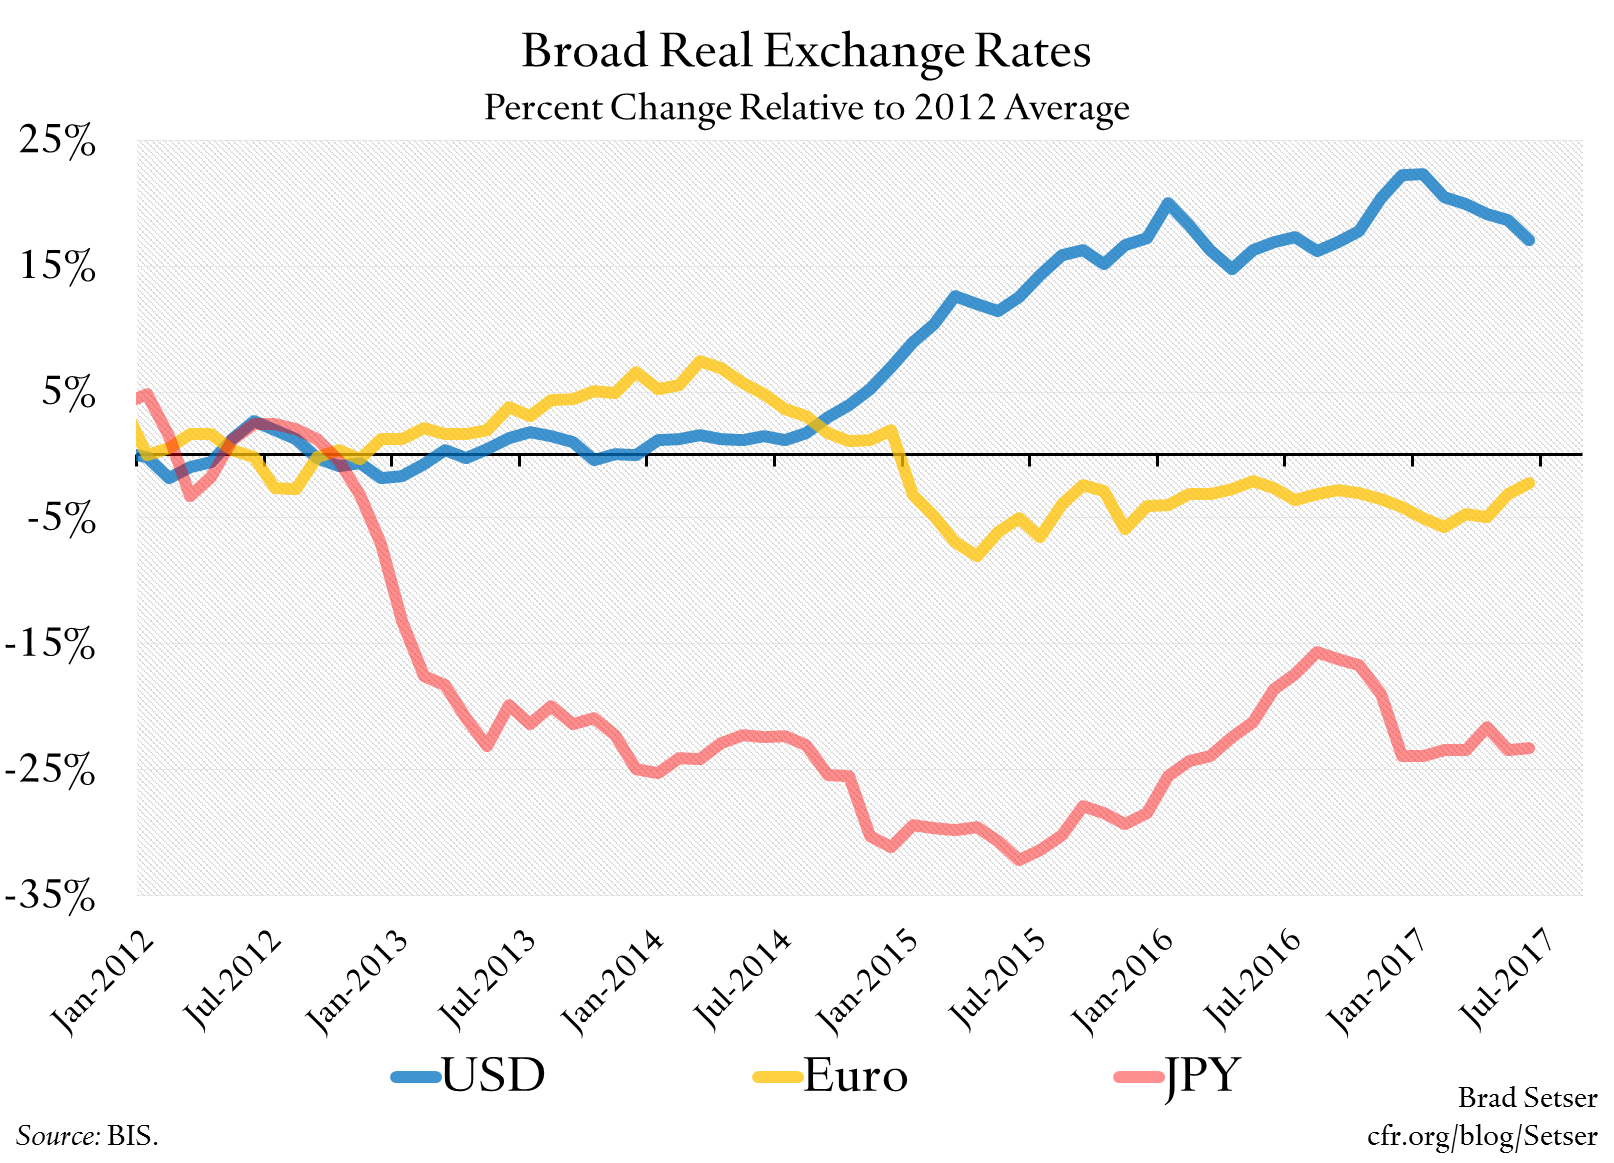 Looking Back at the Impact of Real Exchange Rate Moves on Exports